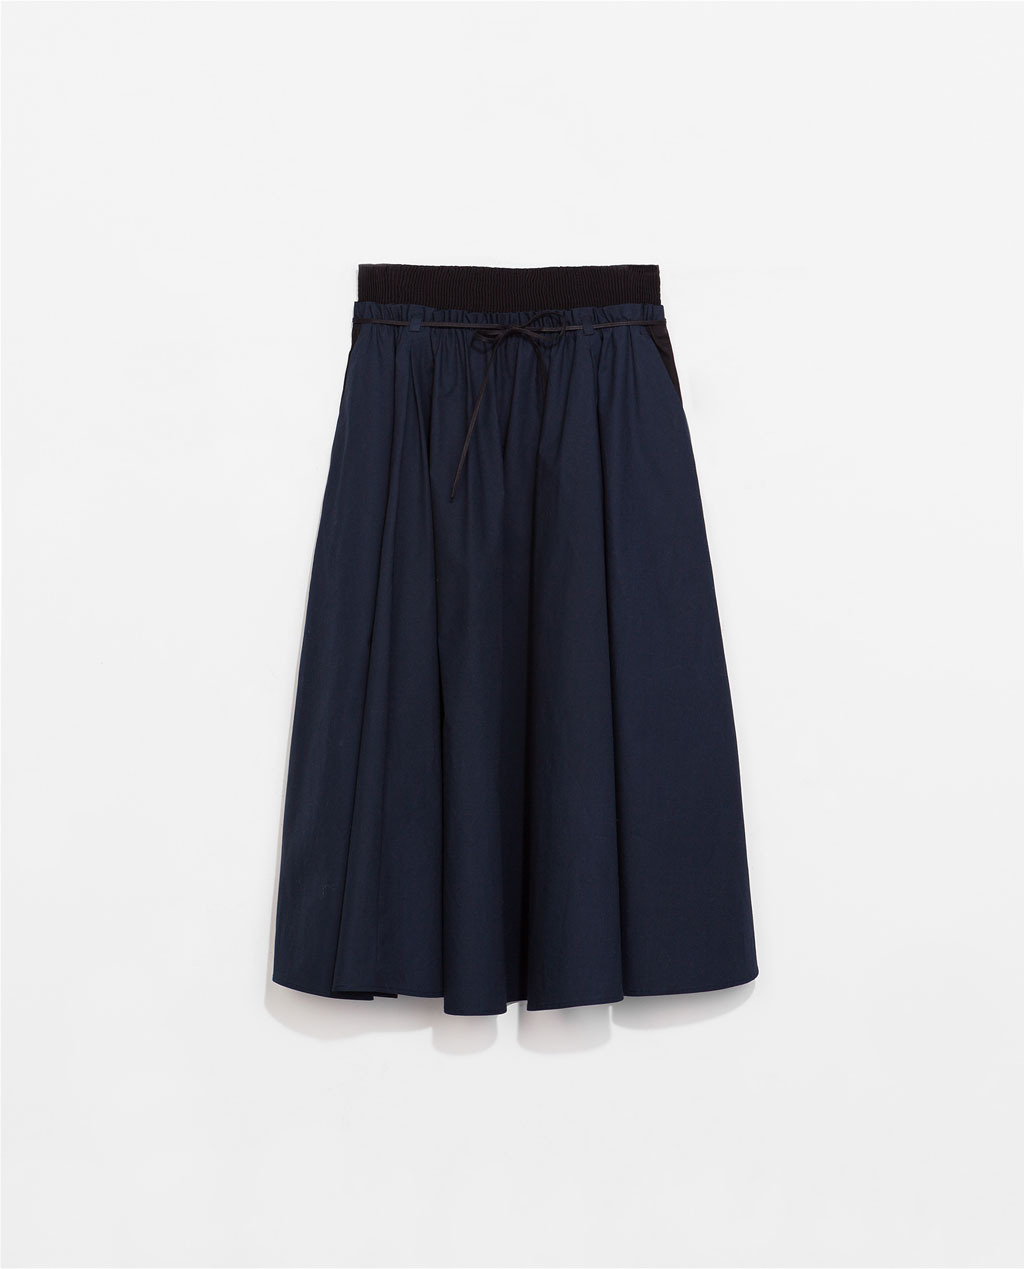 Poplin Skirt With Elastic Waistband - length: below the knee; pattern: plain; style: full/prom skirt; fit: loose/voluminous; waist detail: elasticated waist; waist: high rise; predominant colour: navy; occasions: casual, evening, holiday, creative work; fibres: cotton - 100%; hip detail: subtle/flattering hip detail; texture group: cotton feel fabrics; pattern type: fabric; season: s/s 2014; wardrobe: basic